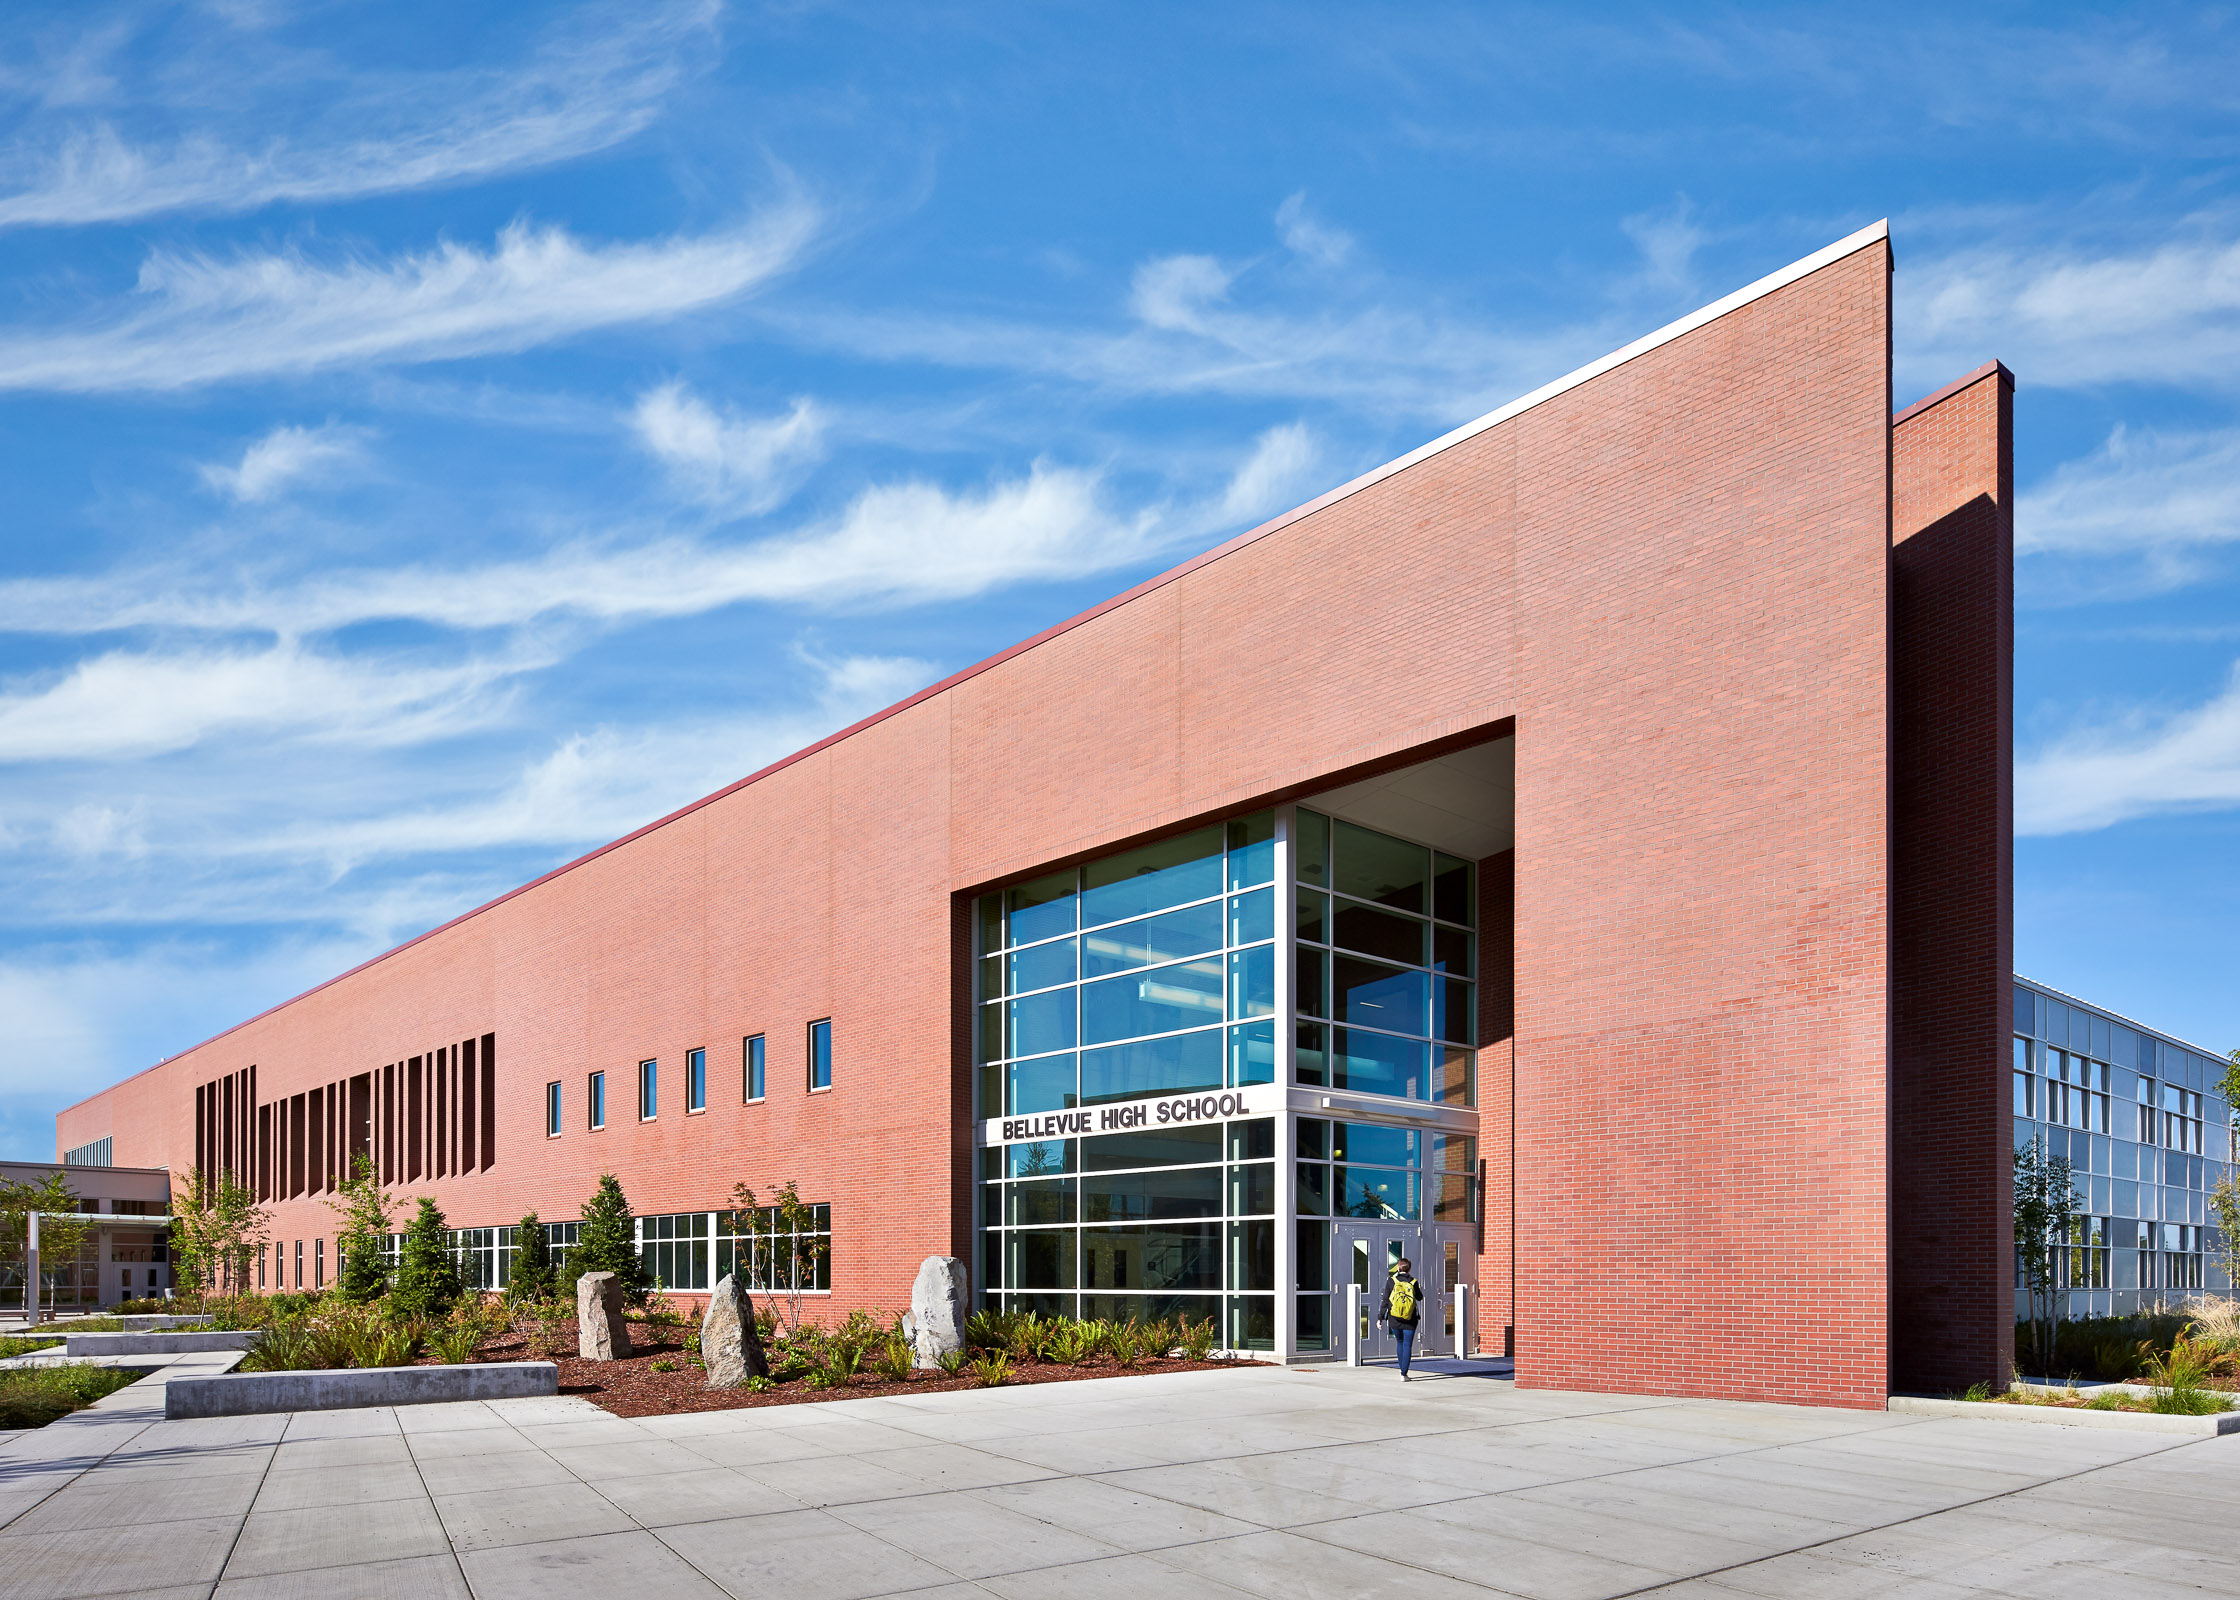 Bellevue High School. Bellevue, Washington Image license: NAC Architecture. © Copyright 2013 Benjamin Benschneider All Rights Reserved. Usage may be arranged by contacting Benjamin Benschneider Photography. Email: bbenschneider@comcast.net or phone: 206-789-5973.